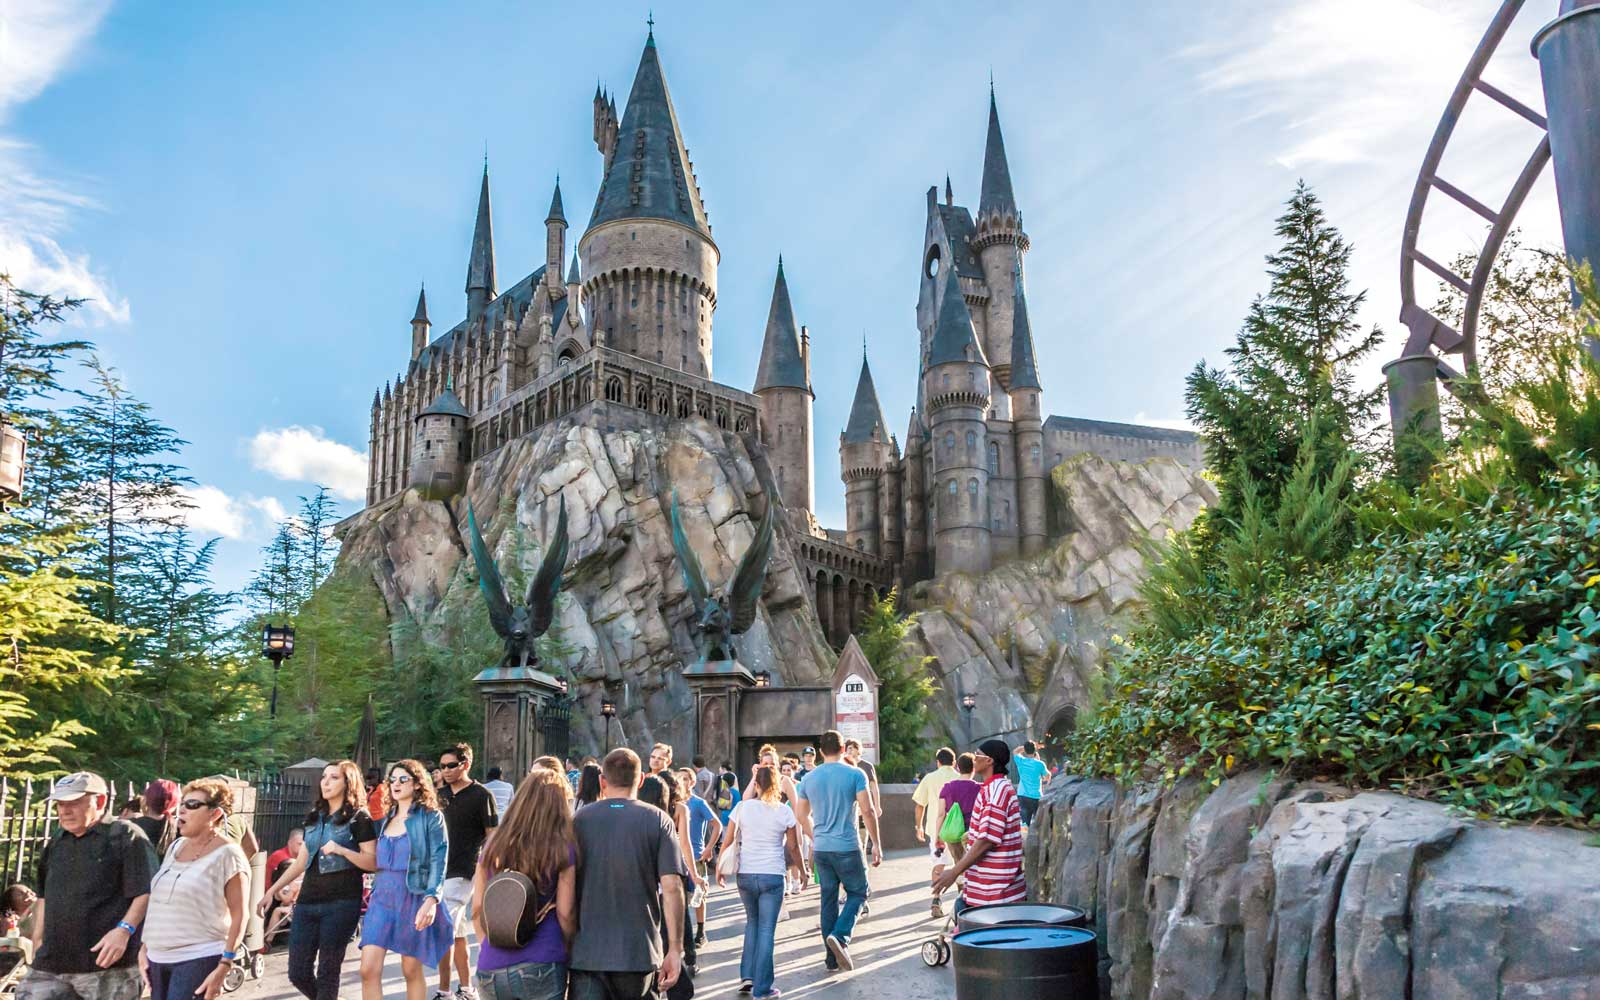 Wizards and Muggles Alike Are Going to Want to Ride Universal Orlando's New Harry Potter Roller Coaster